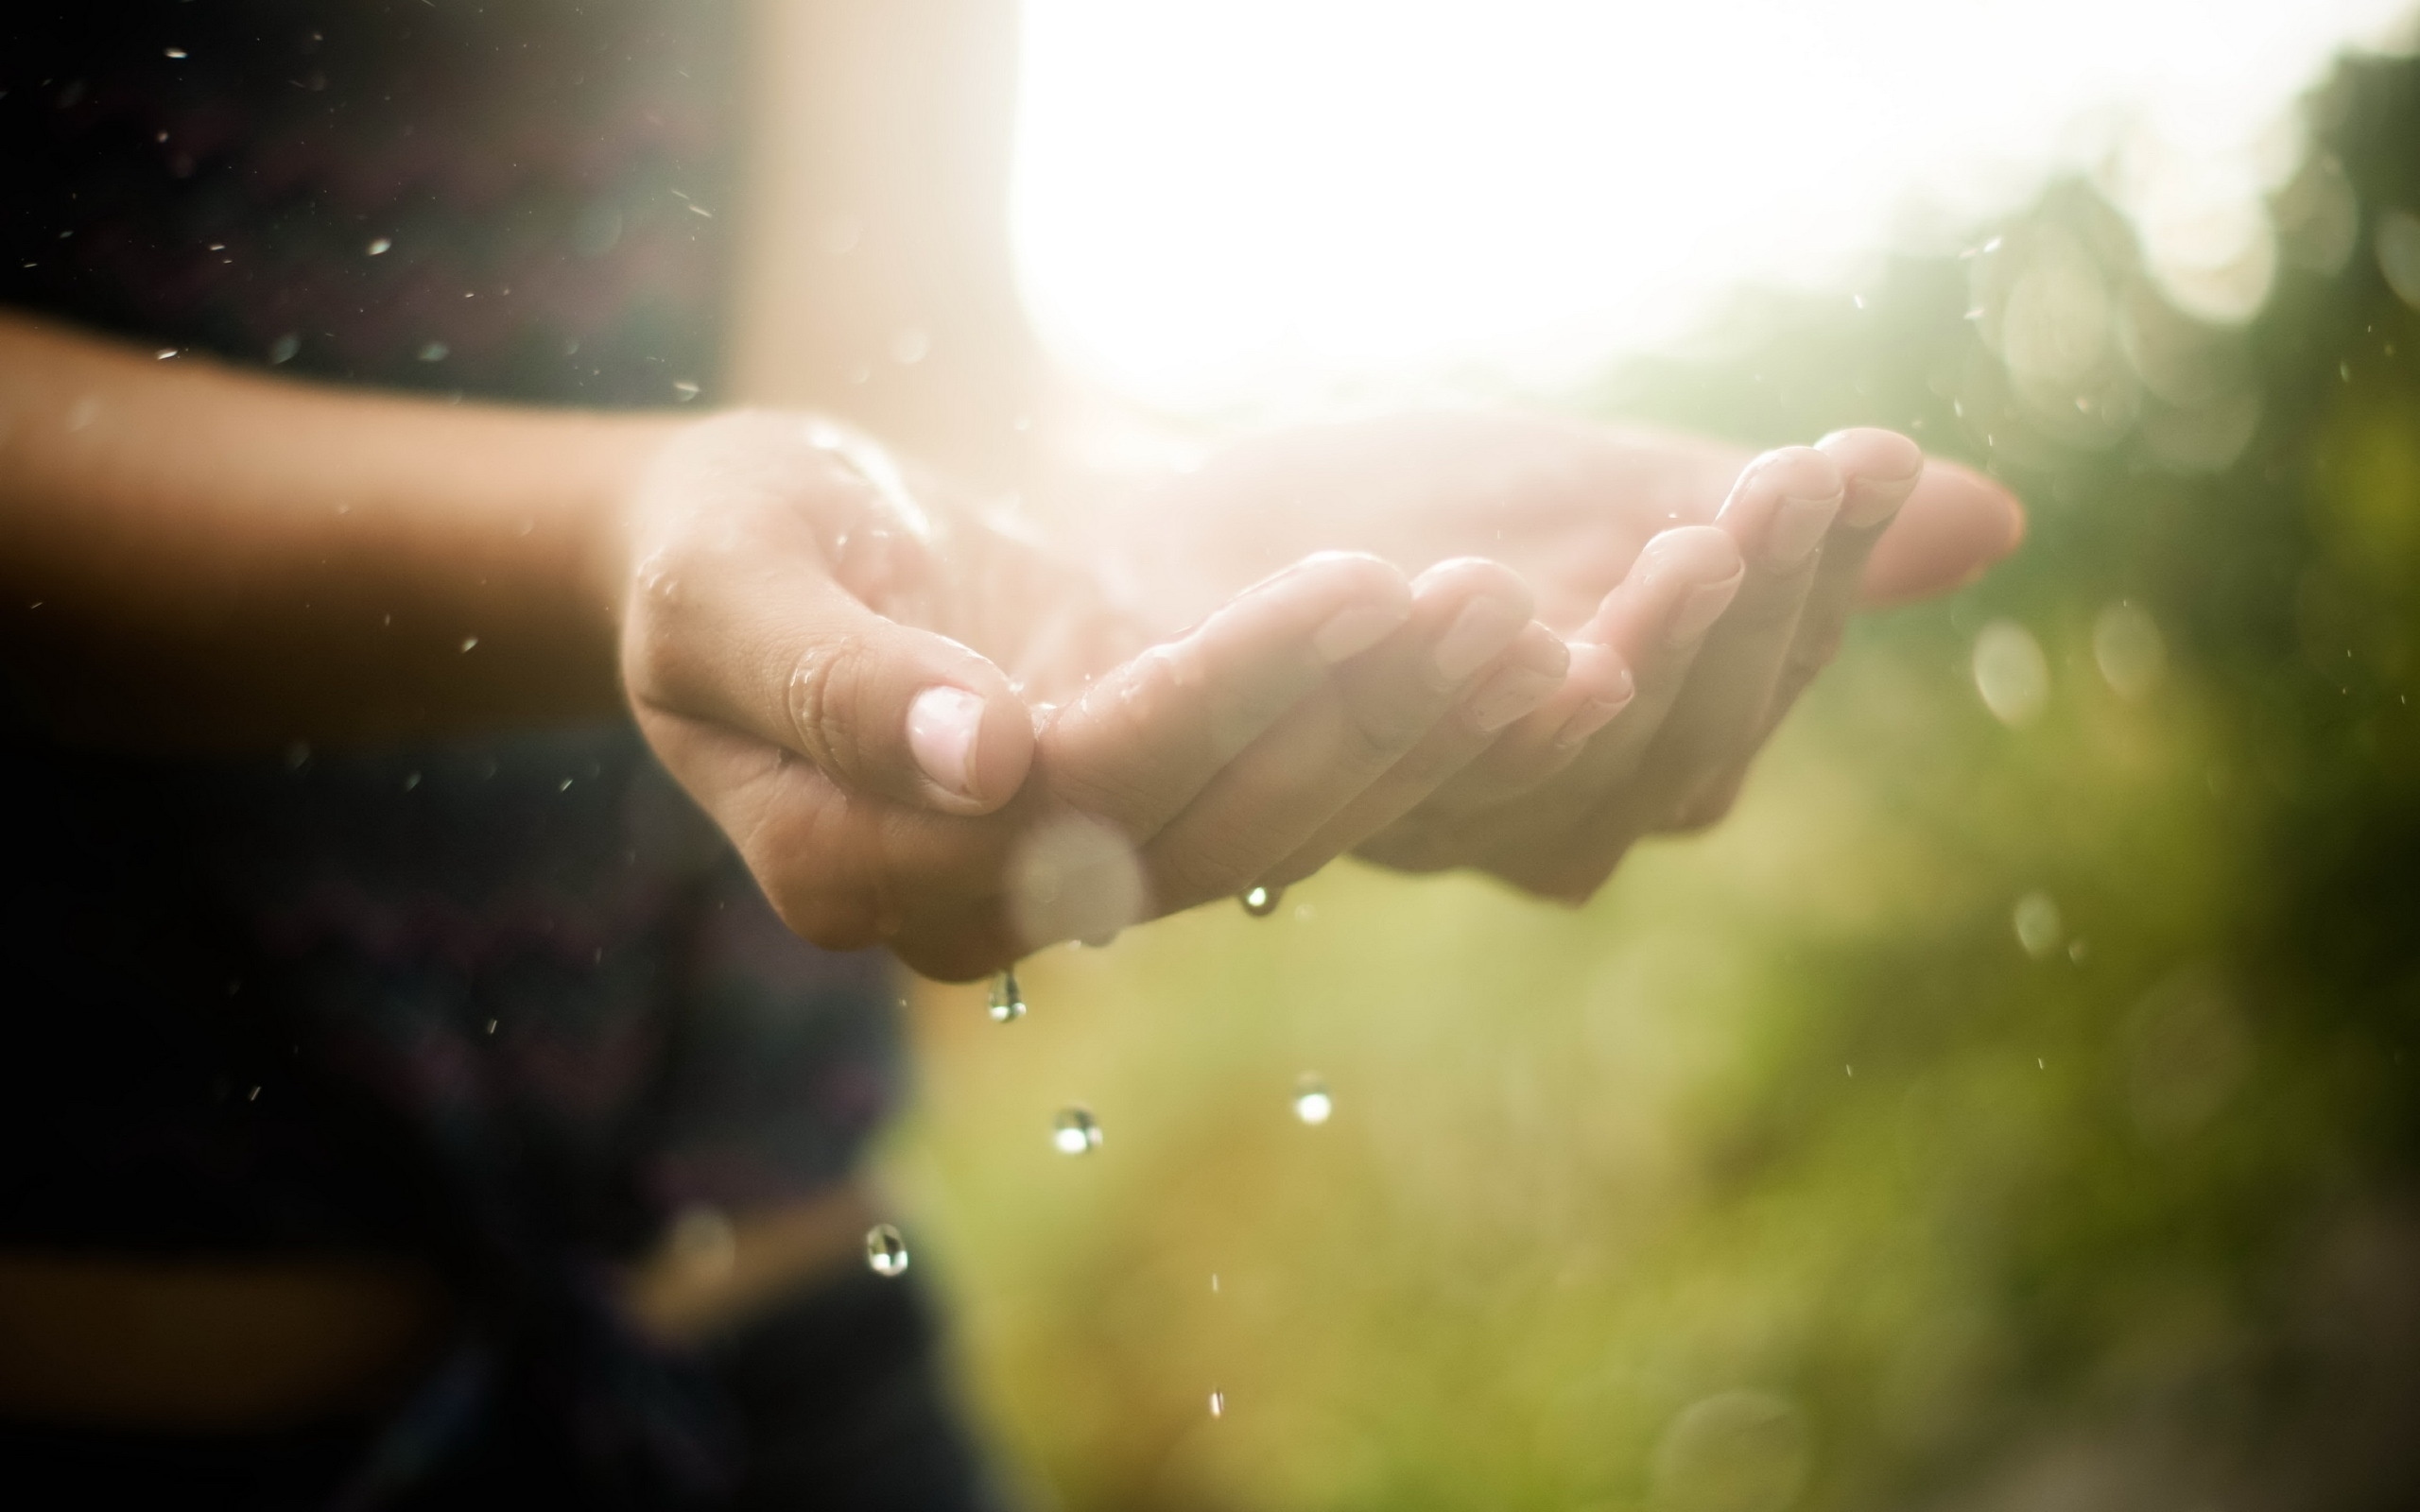 hands_drops_water_macro_light_81004_2560x1600